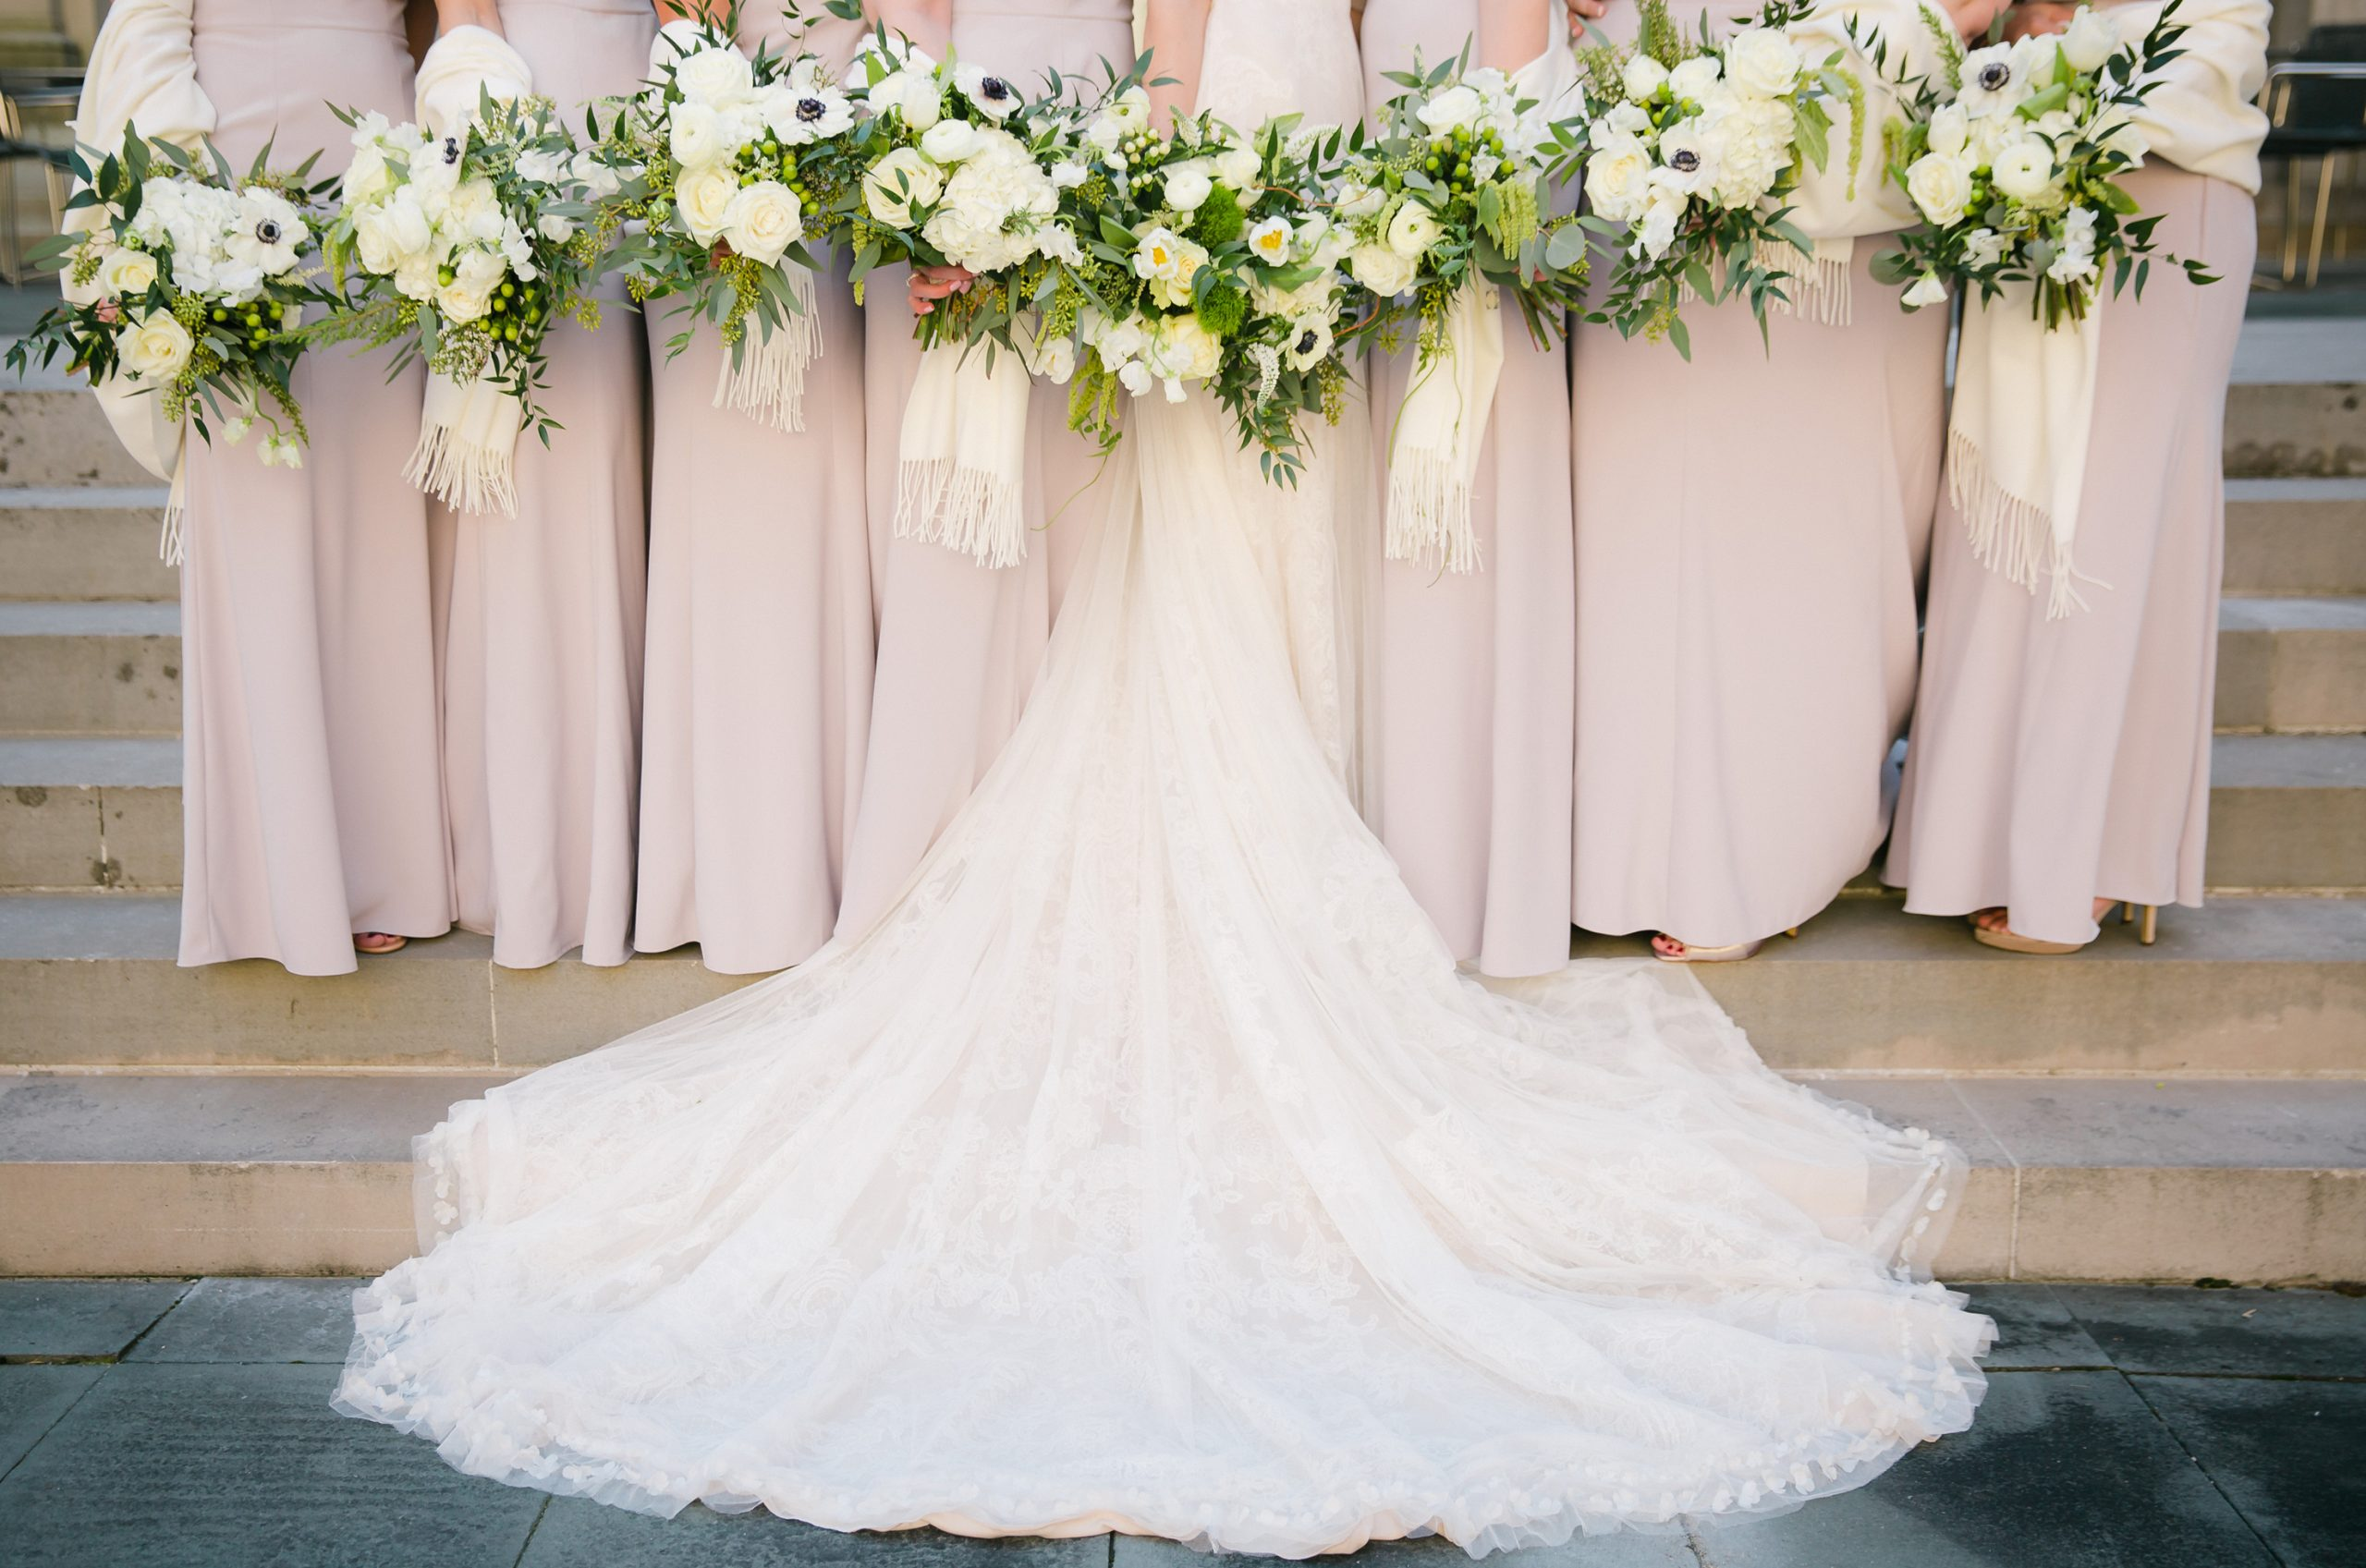 Bridal party blush pink dresses with white an green fresh spring wedding bouquets